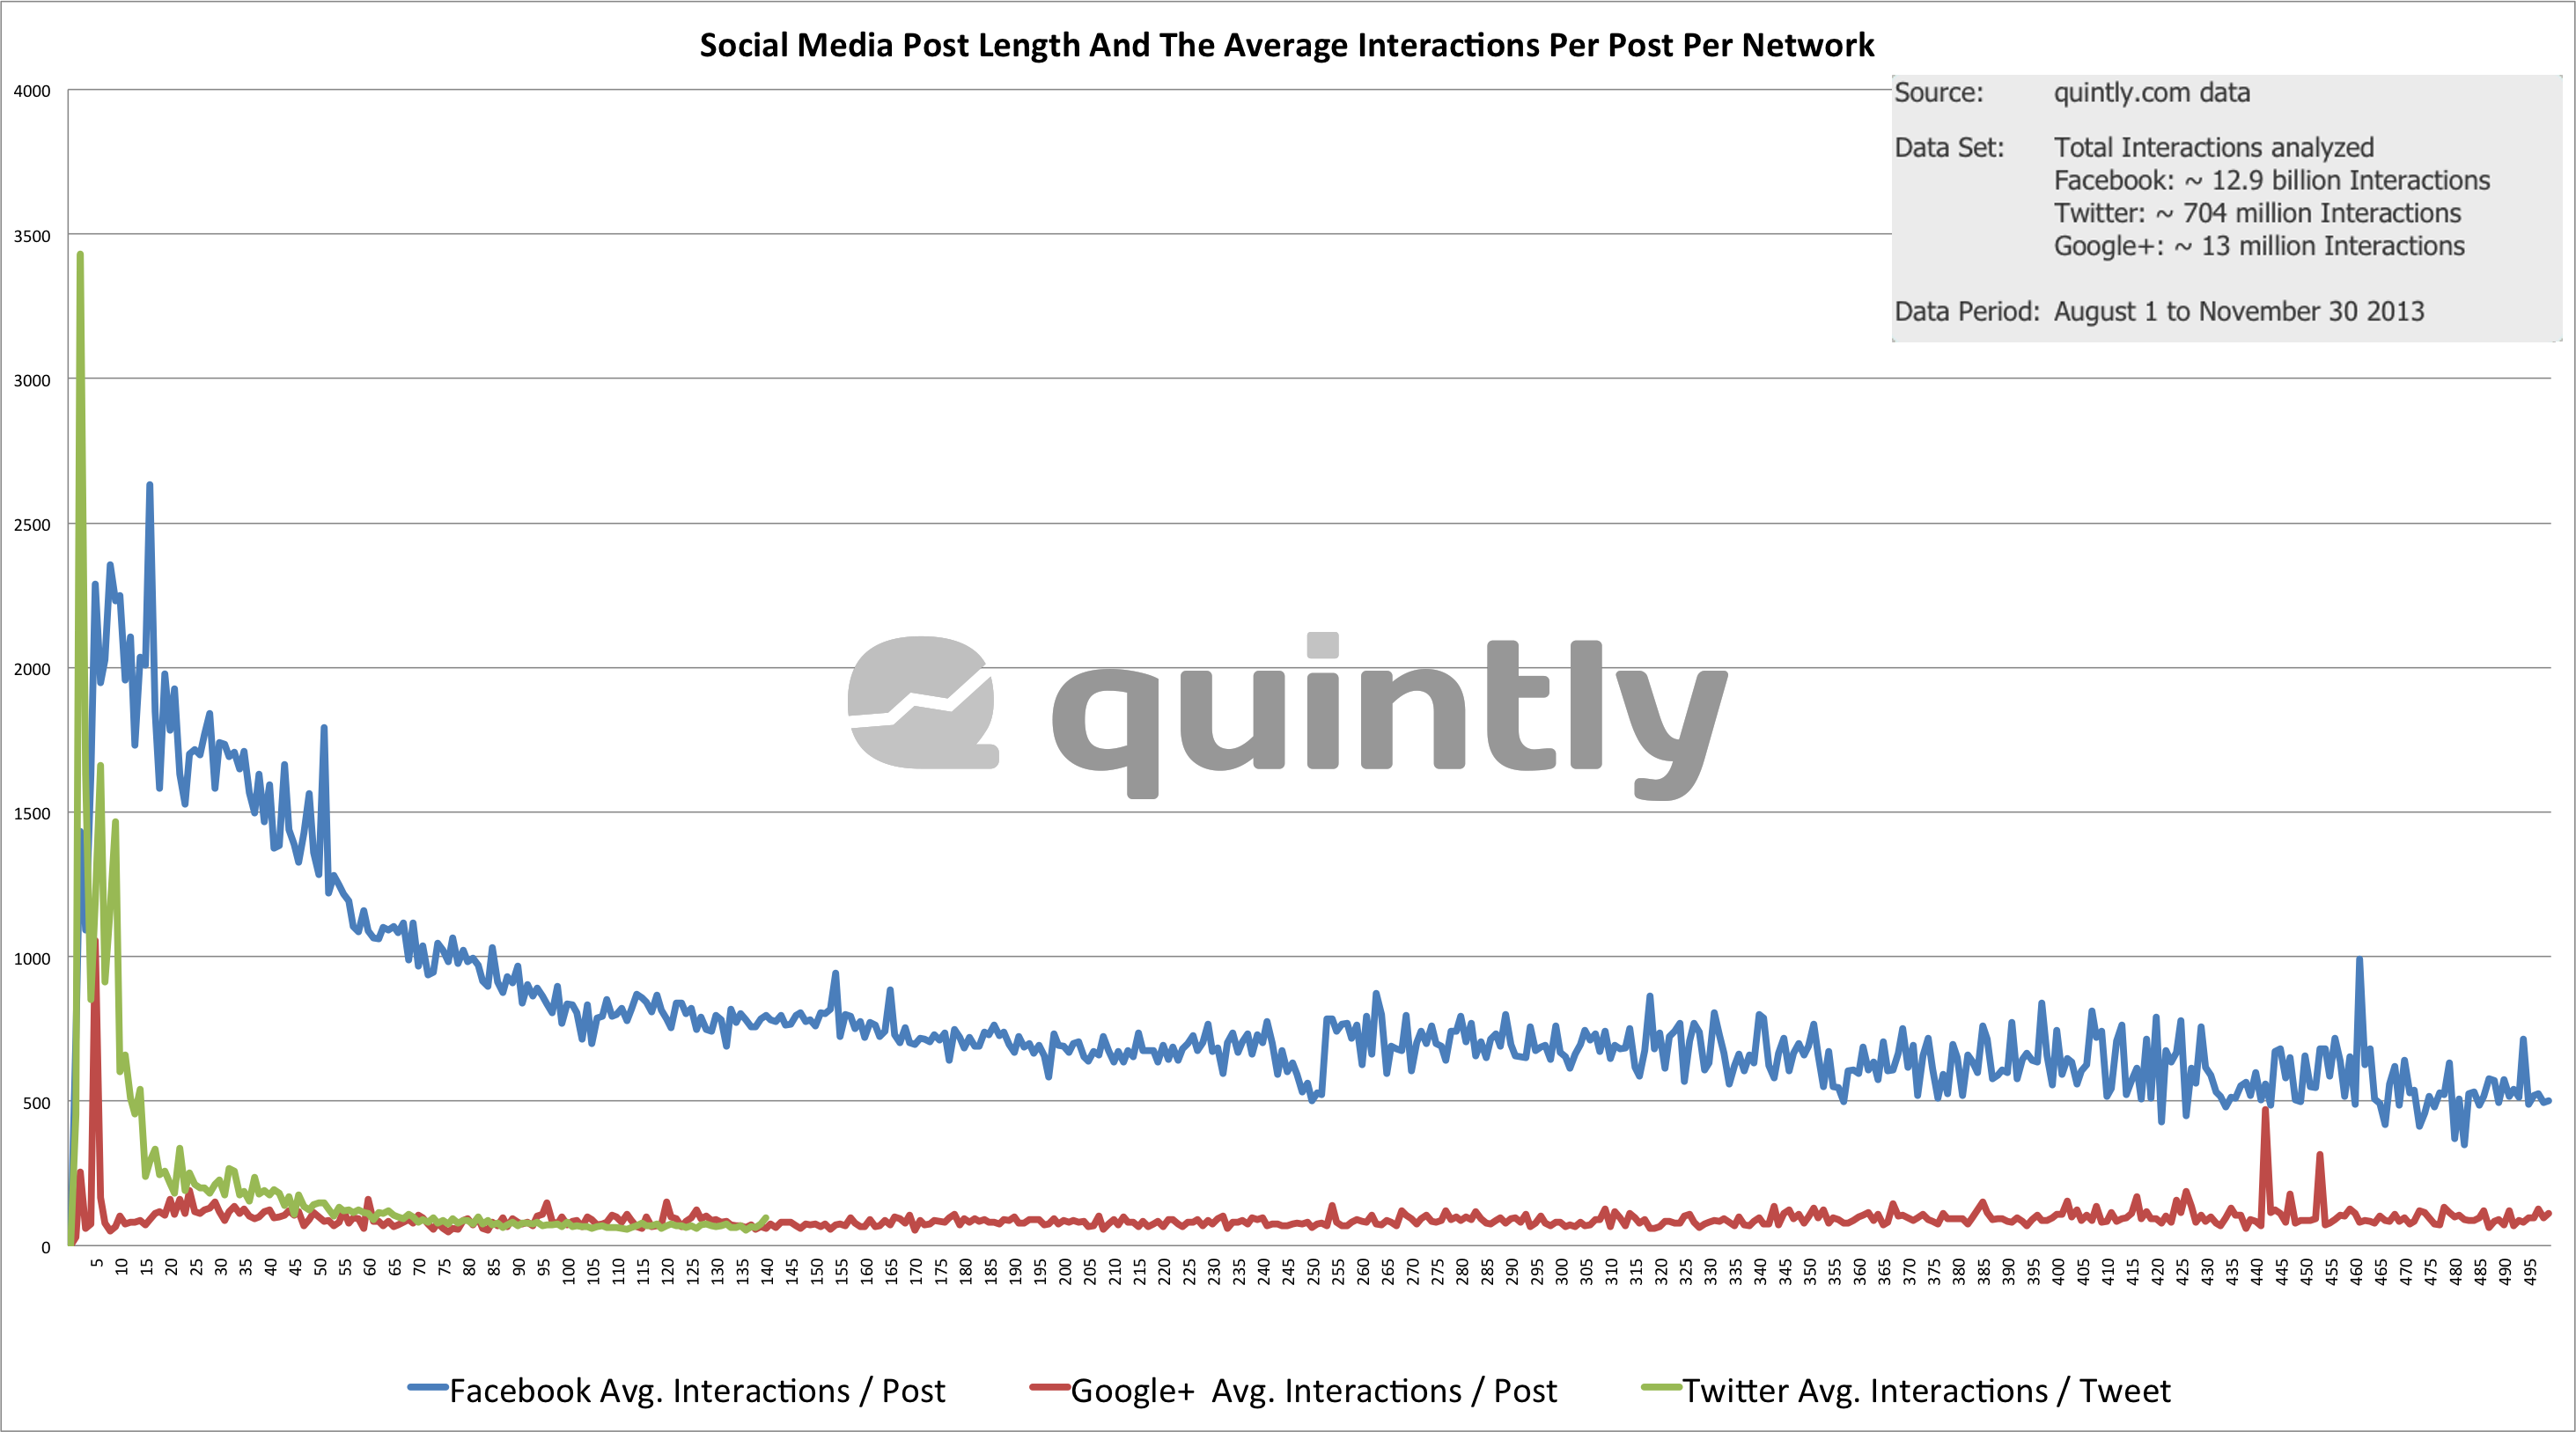 Social Media Post Length And The Average Interactions / Post Per Network